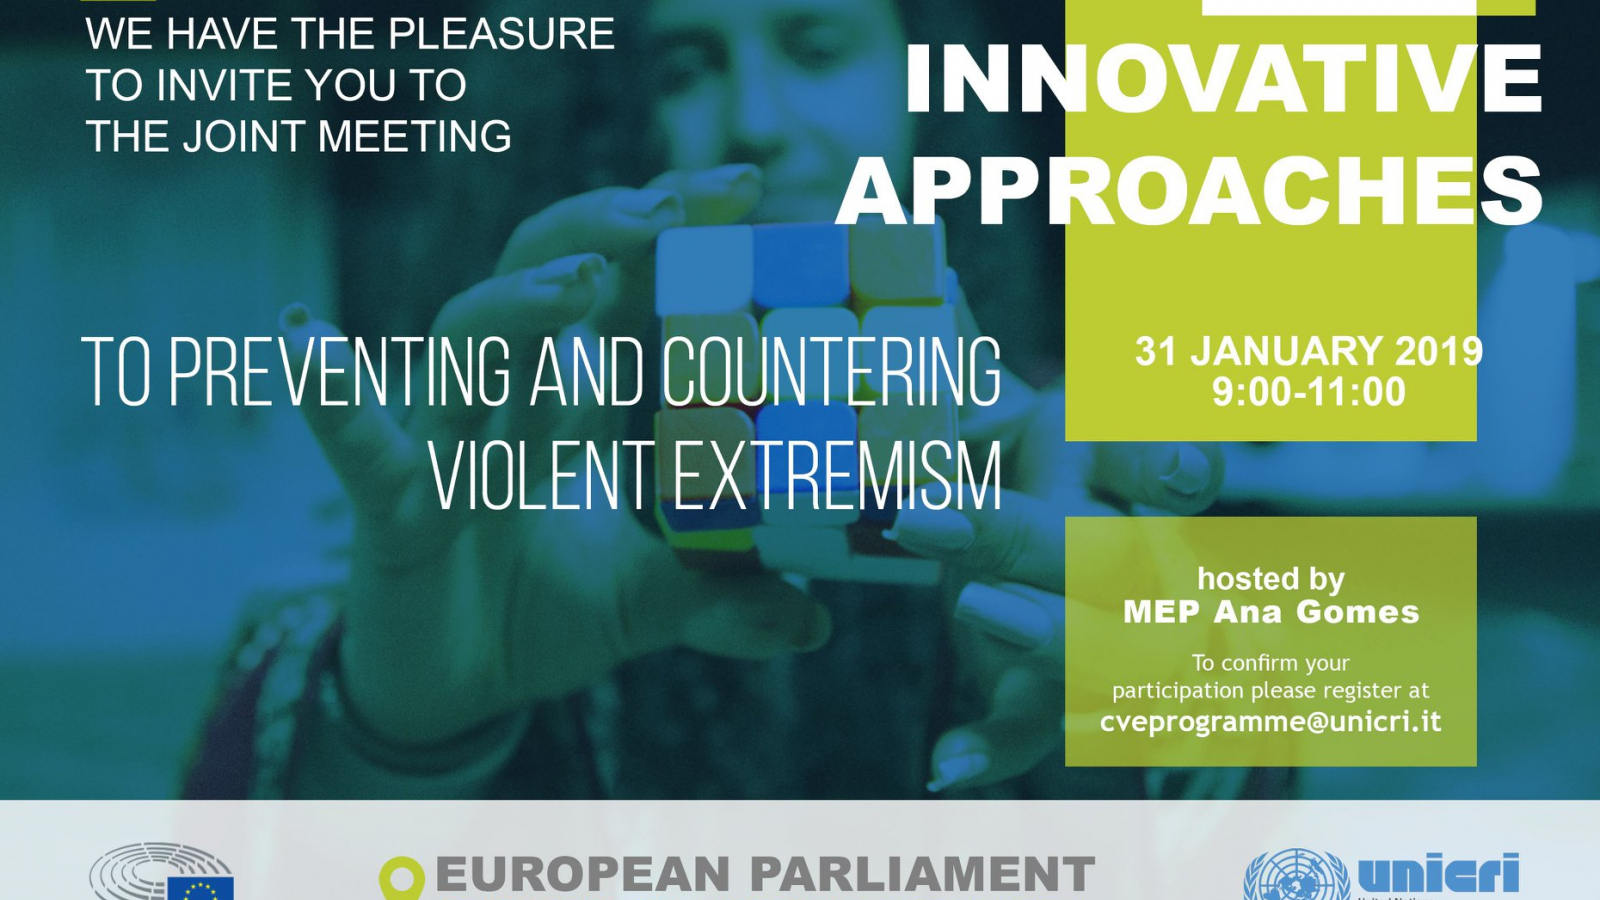 EU-funded programme on countering radicalization and violent extremism to share first results